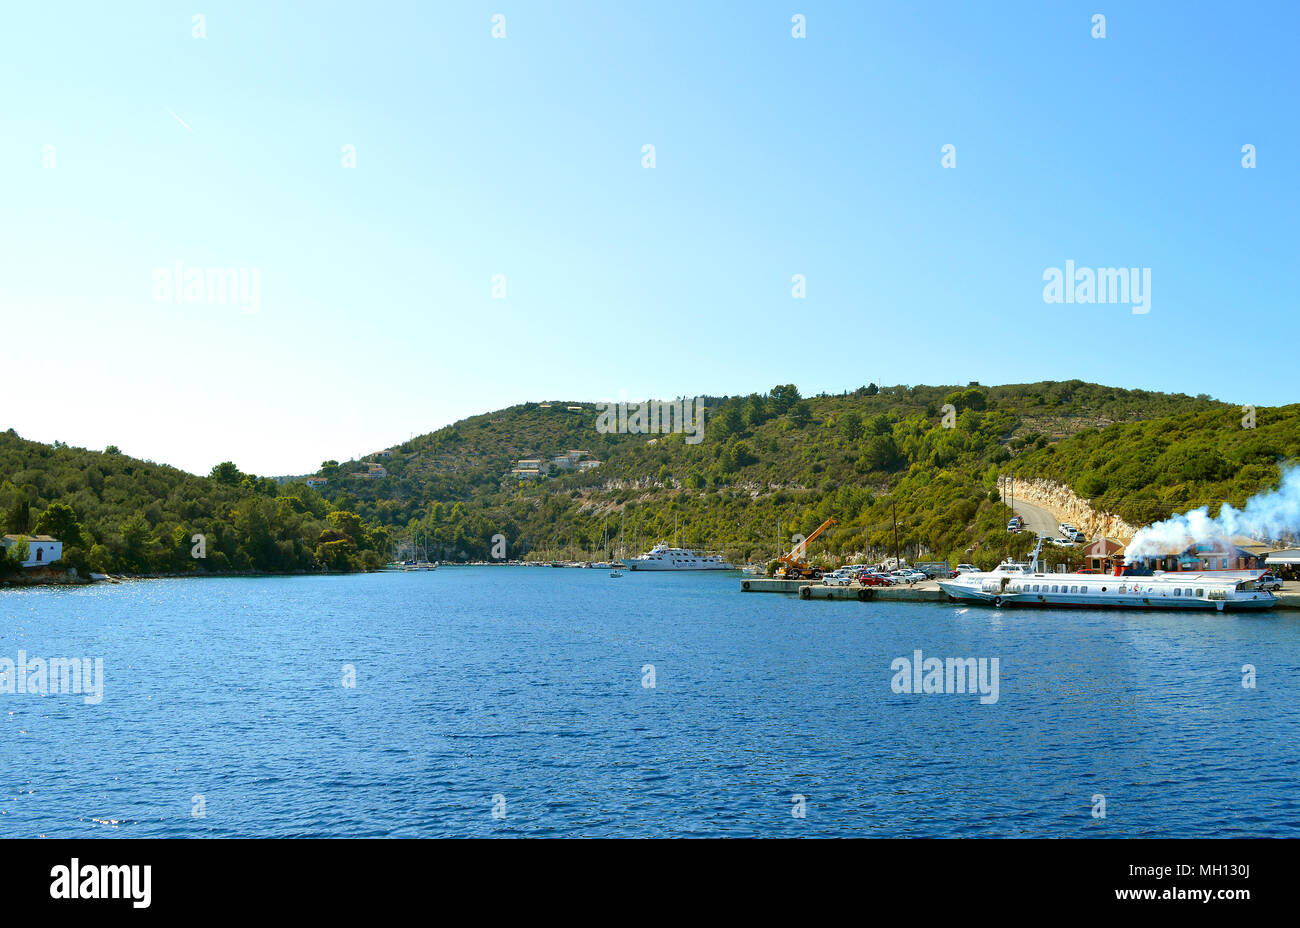 Tourist cruise ships in Antipaxos harbour ready to sail to Corfu - Stock Image